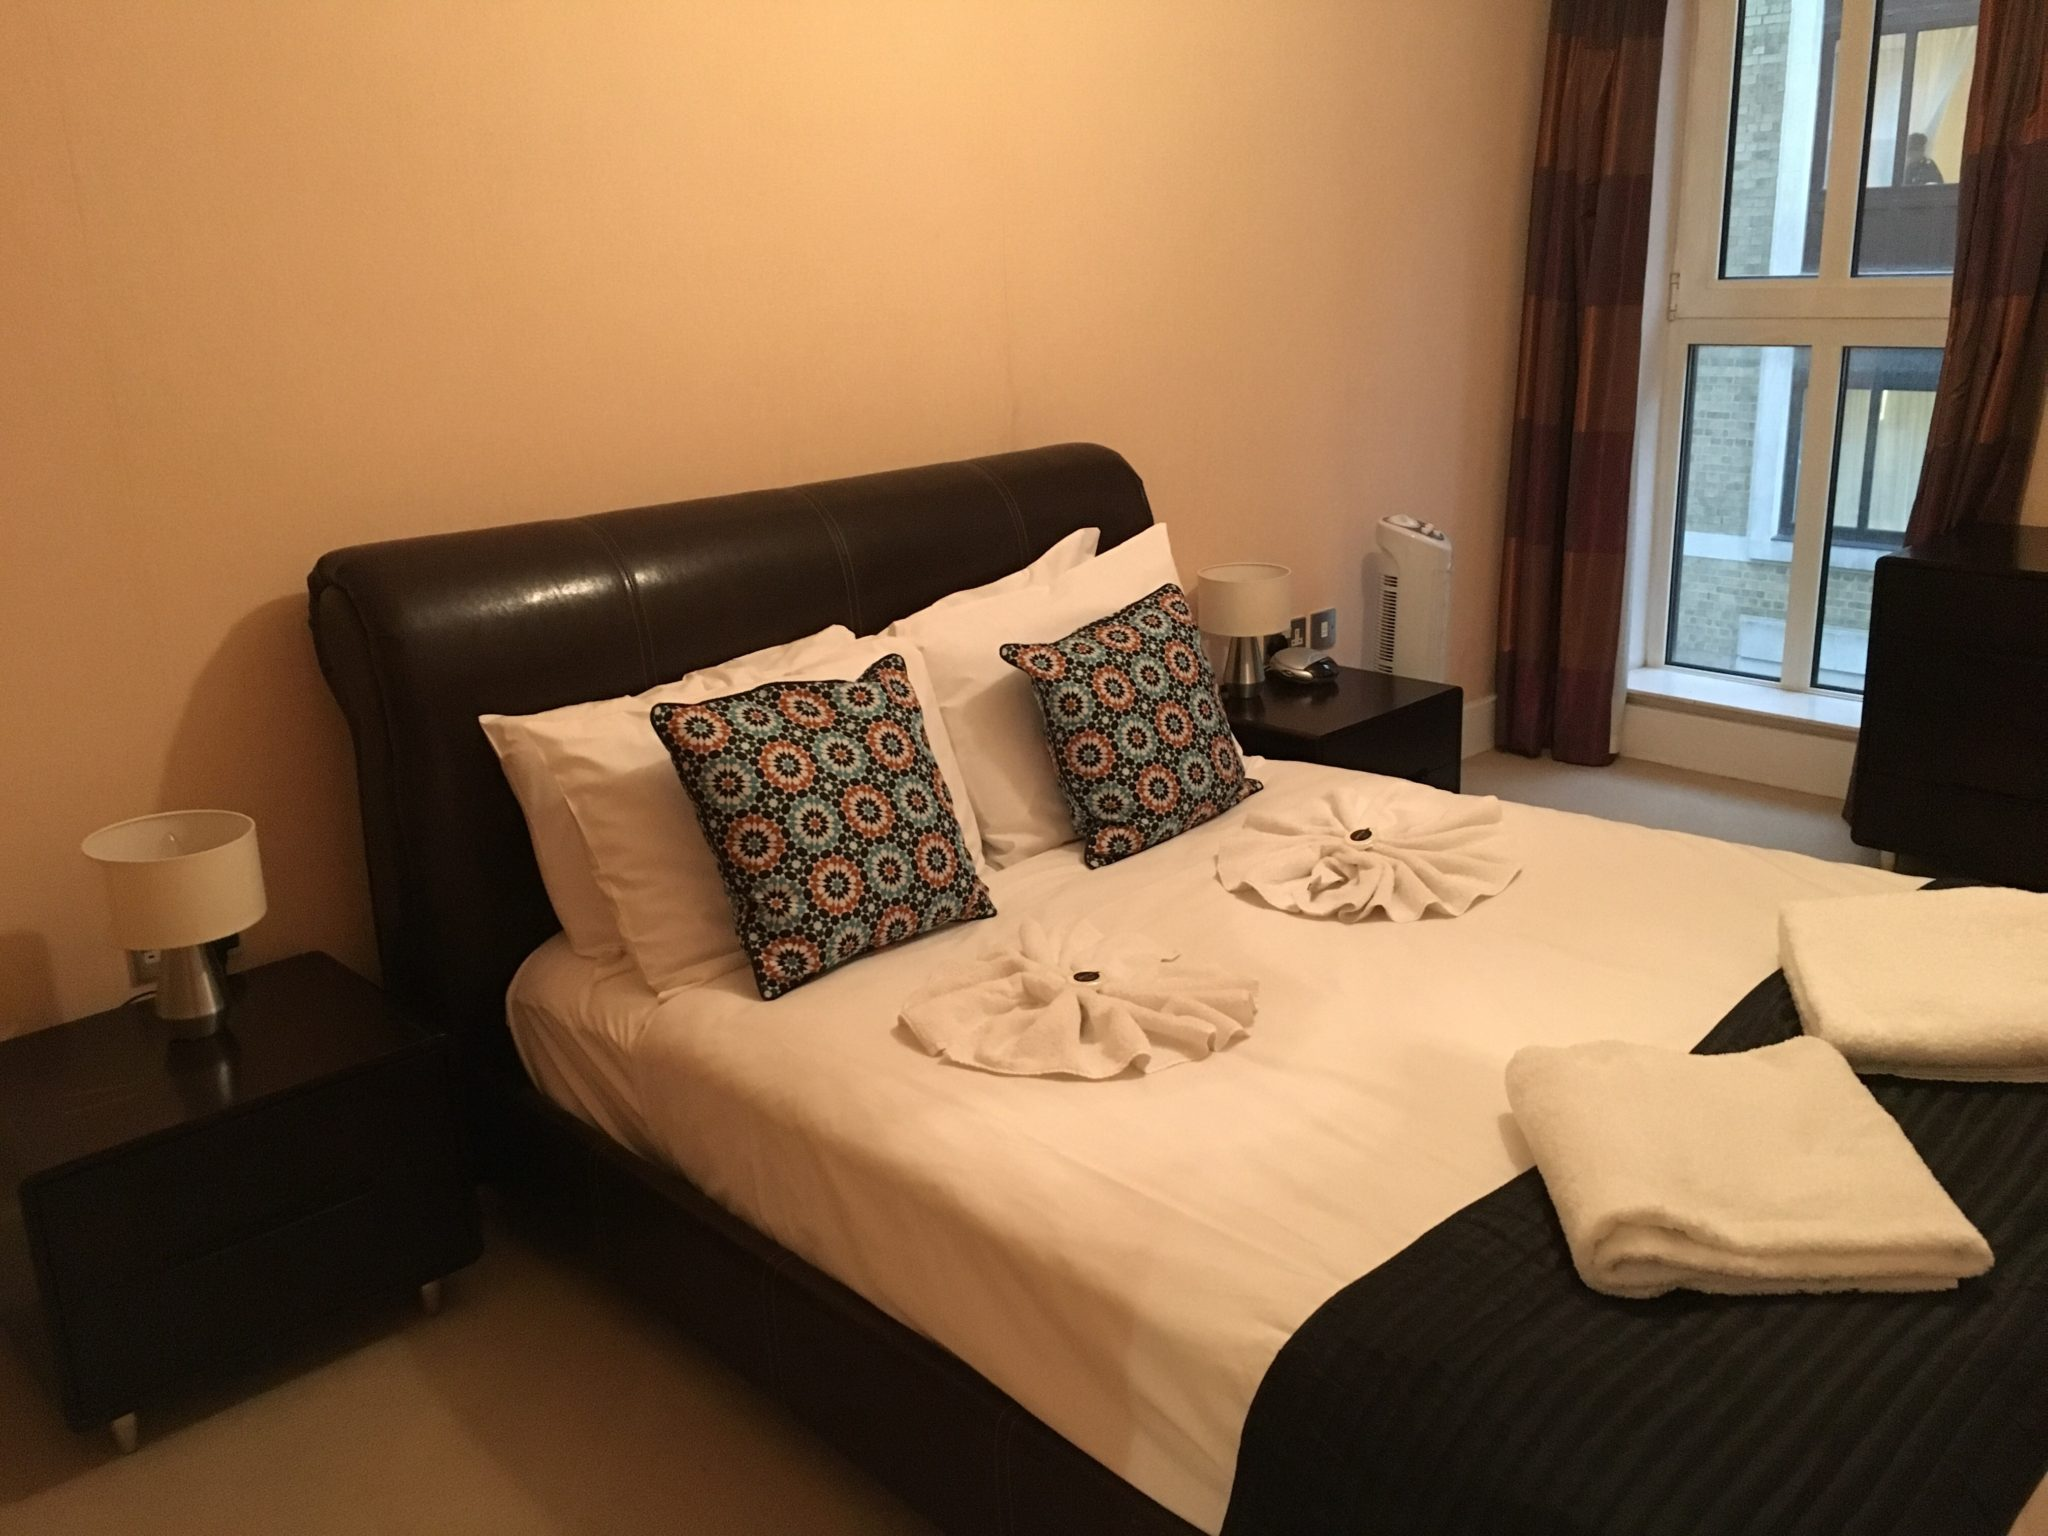 Tower-Hill-Executive-Apartments---Clarendon-Pepys-Street- -Stylish-Apartments- -Free-Wifi-&-Weekly-Maid-Service- 0208-6913920 -Urban-Stay